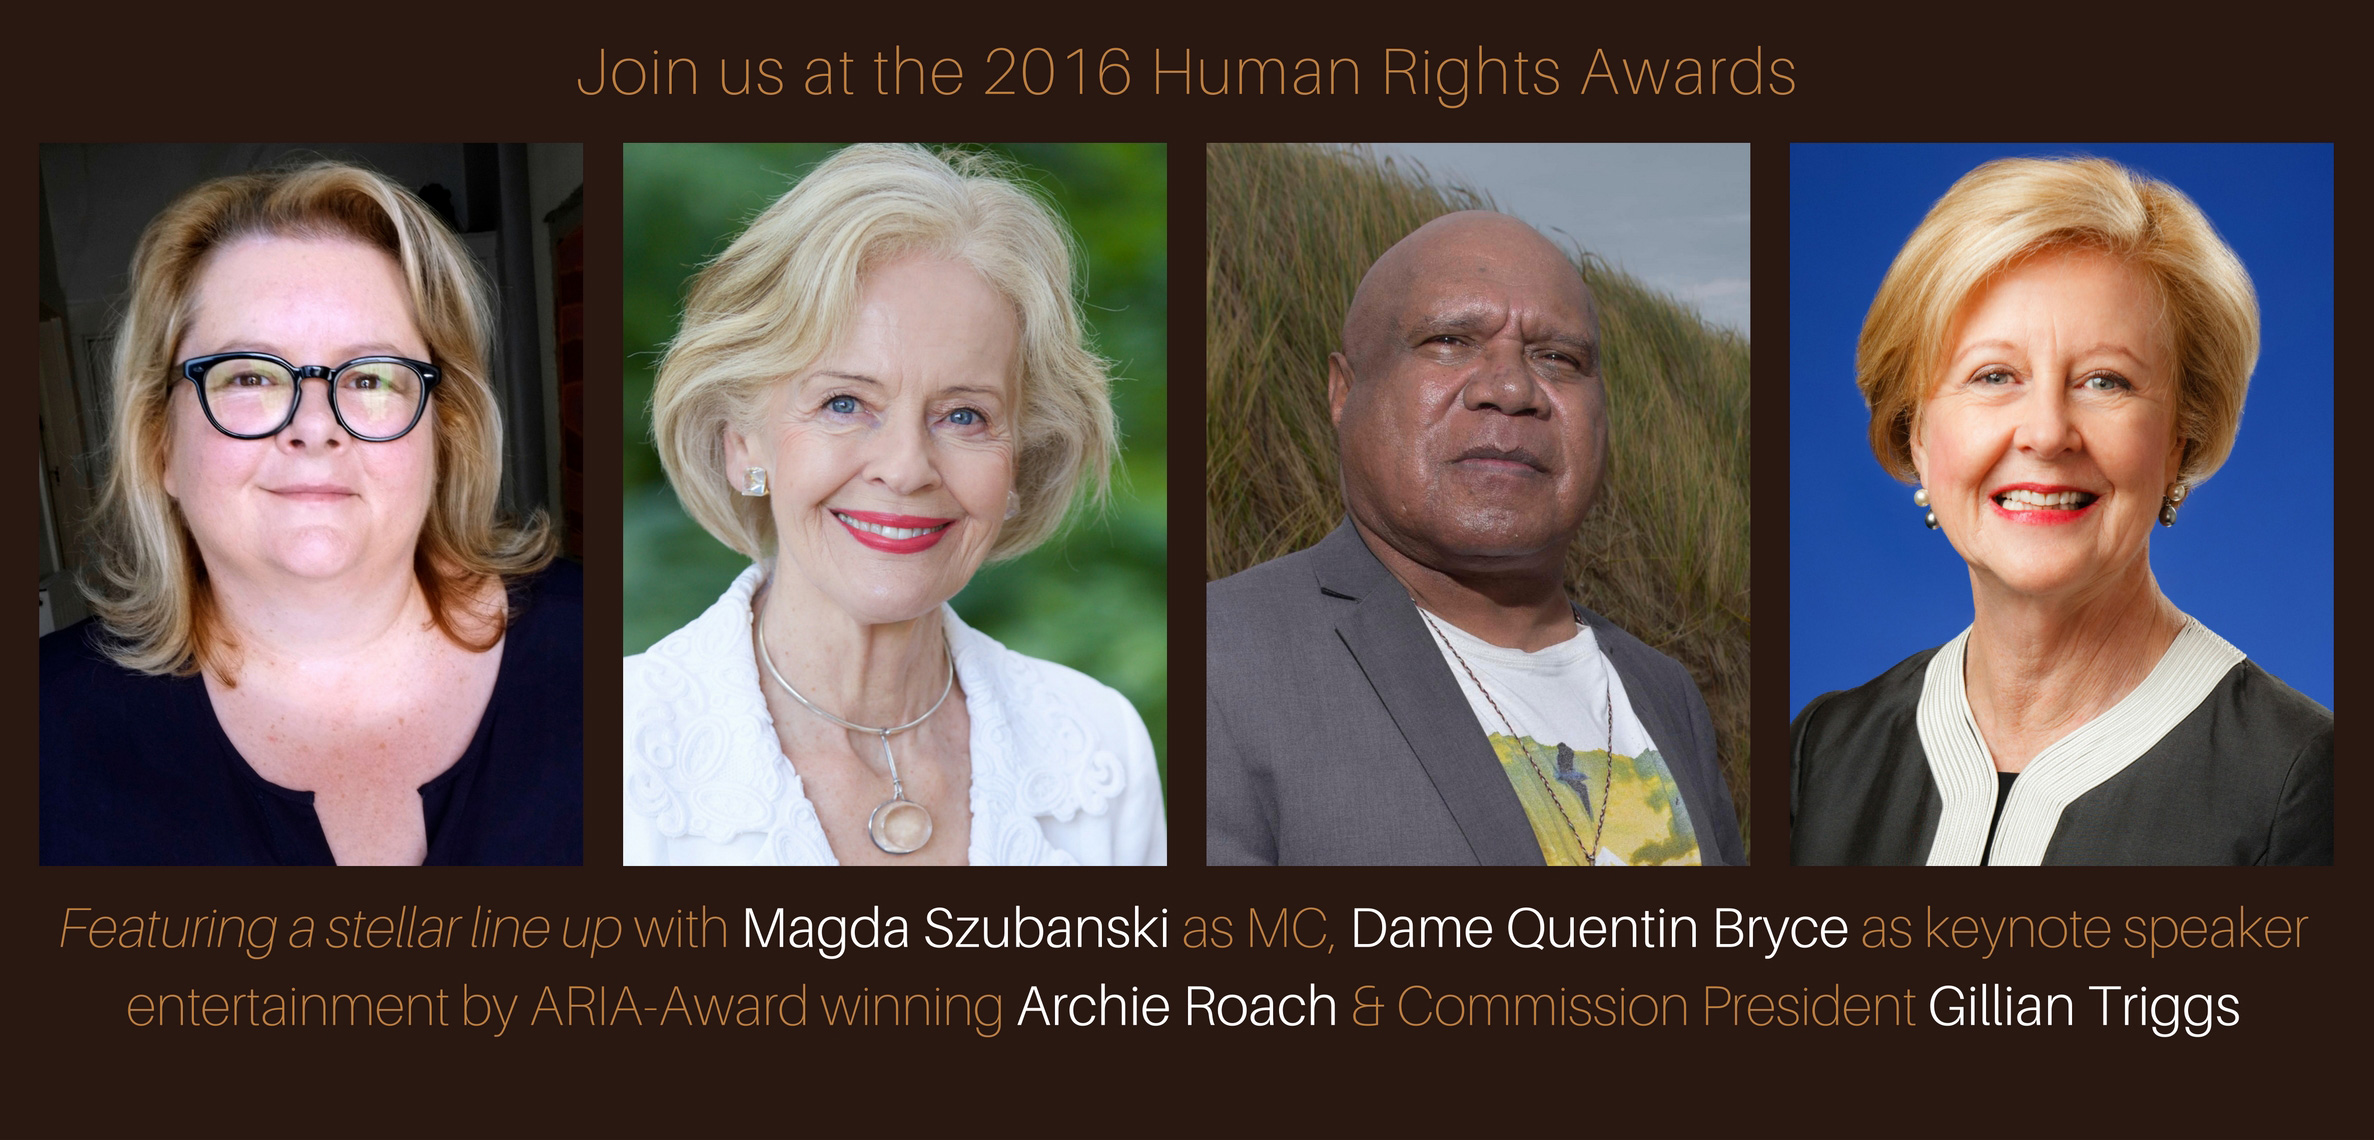 Join us at the 2016 Human rights Awards, pictured: Magda Szubanski, Dame Quentin Bryce, Archie Roach and Gillian Triggs